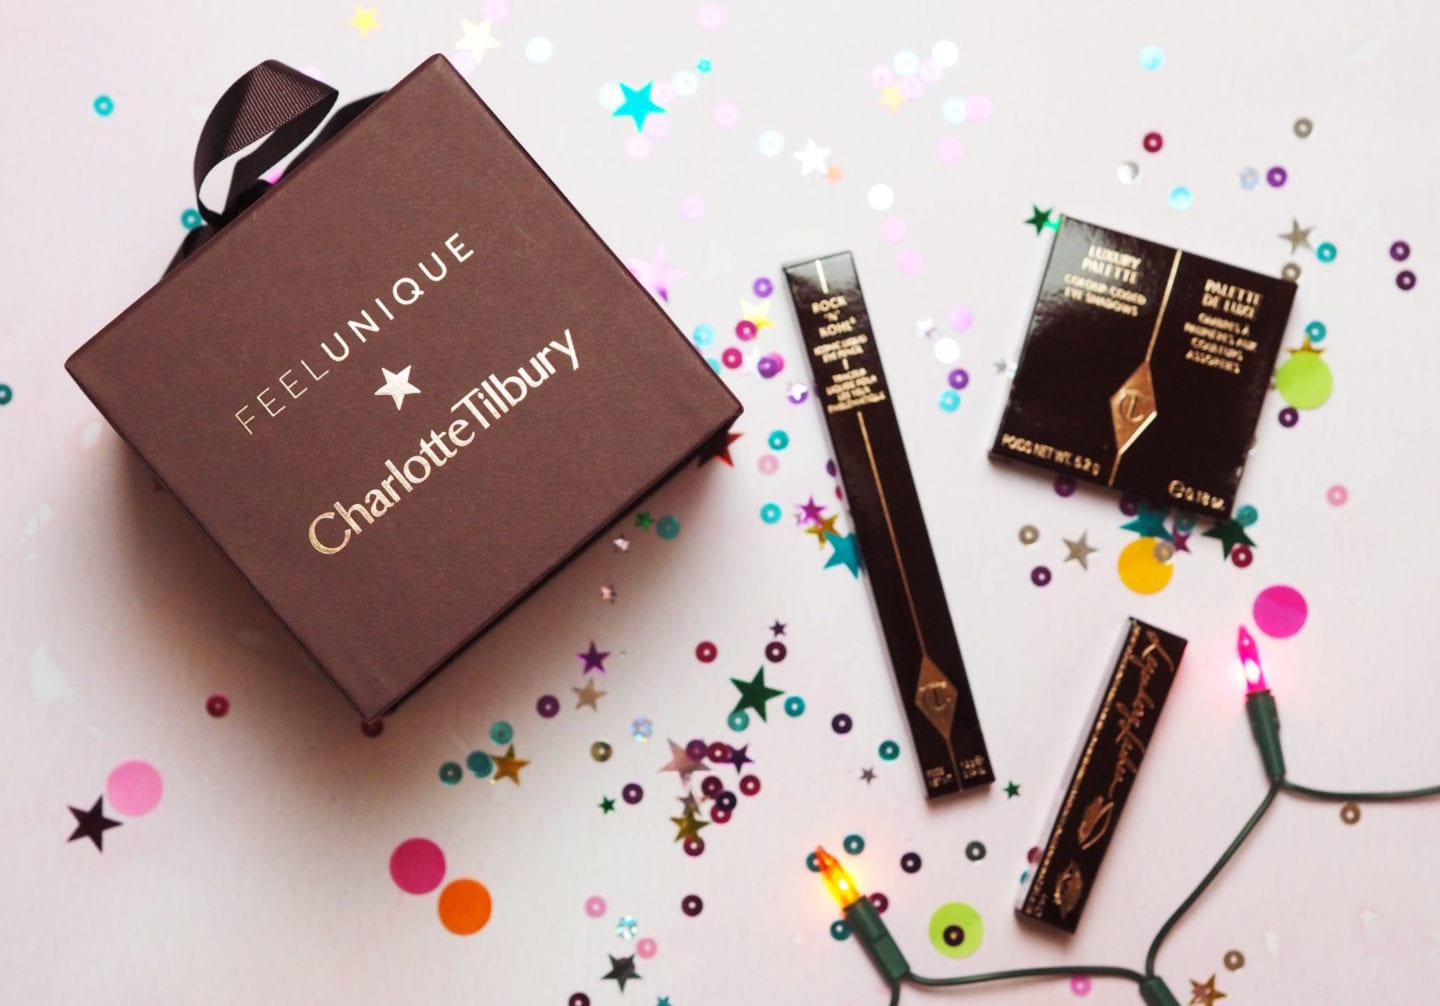 Charlotte Tilbury X FeelUnique Stars of the Red Carpet Set.